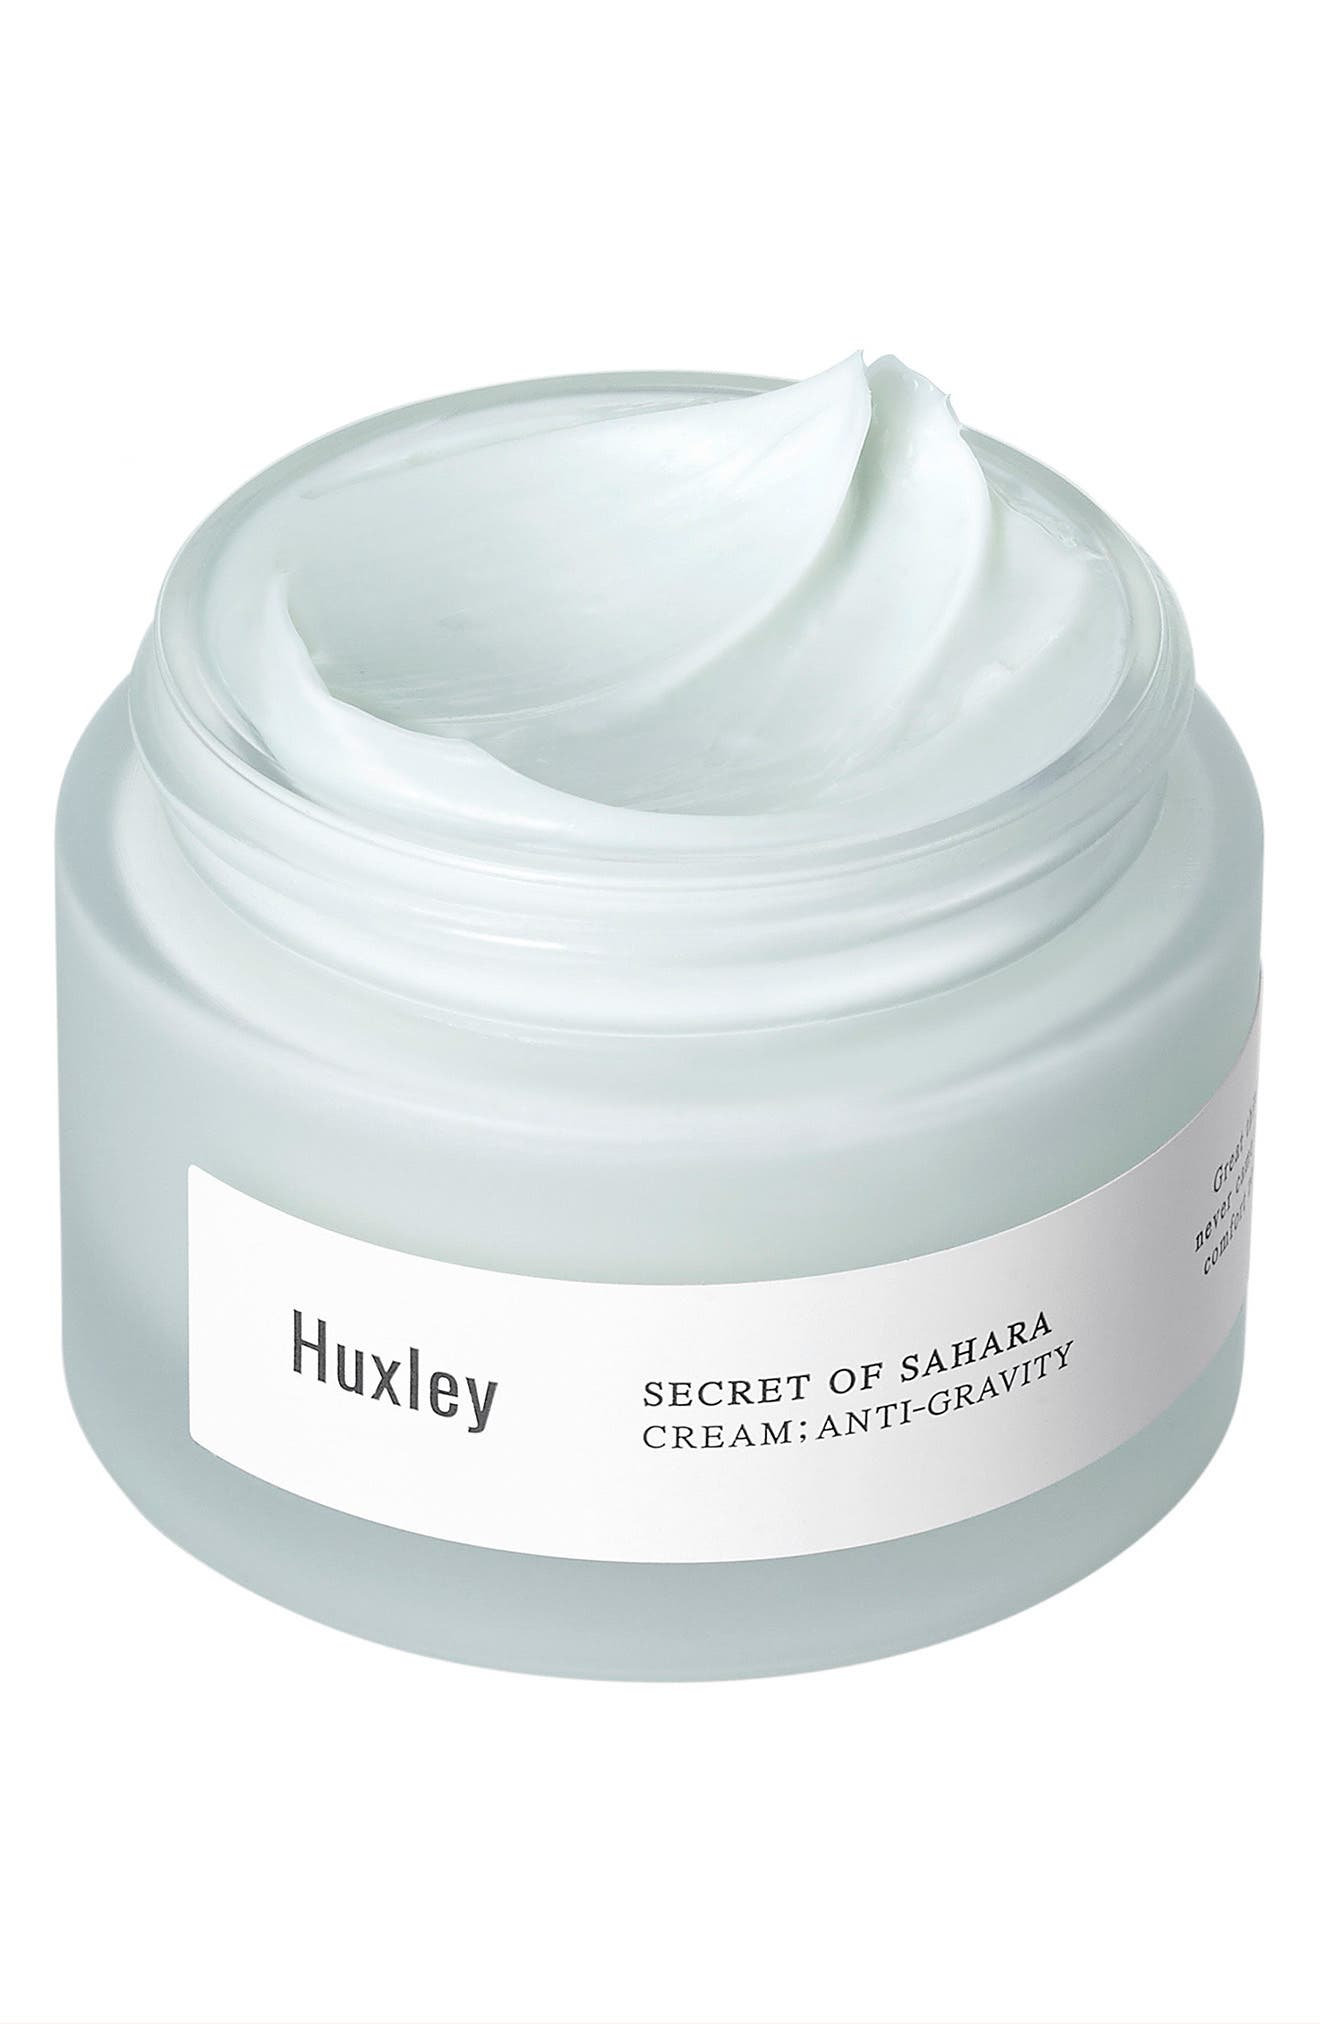 Secret of Sahara - Anti-Gravity Cream,                             Alternate thumbnail 2, color,                             None